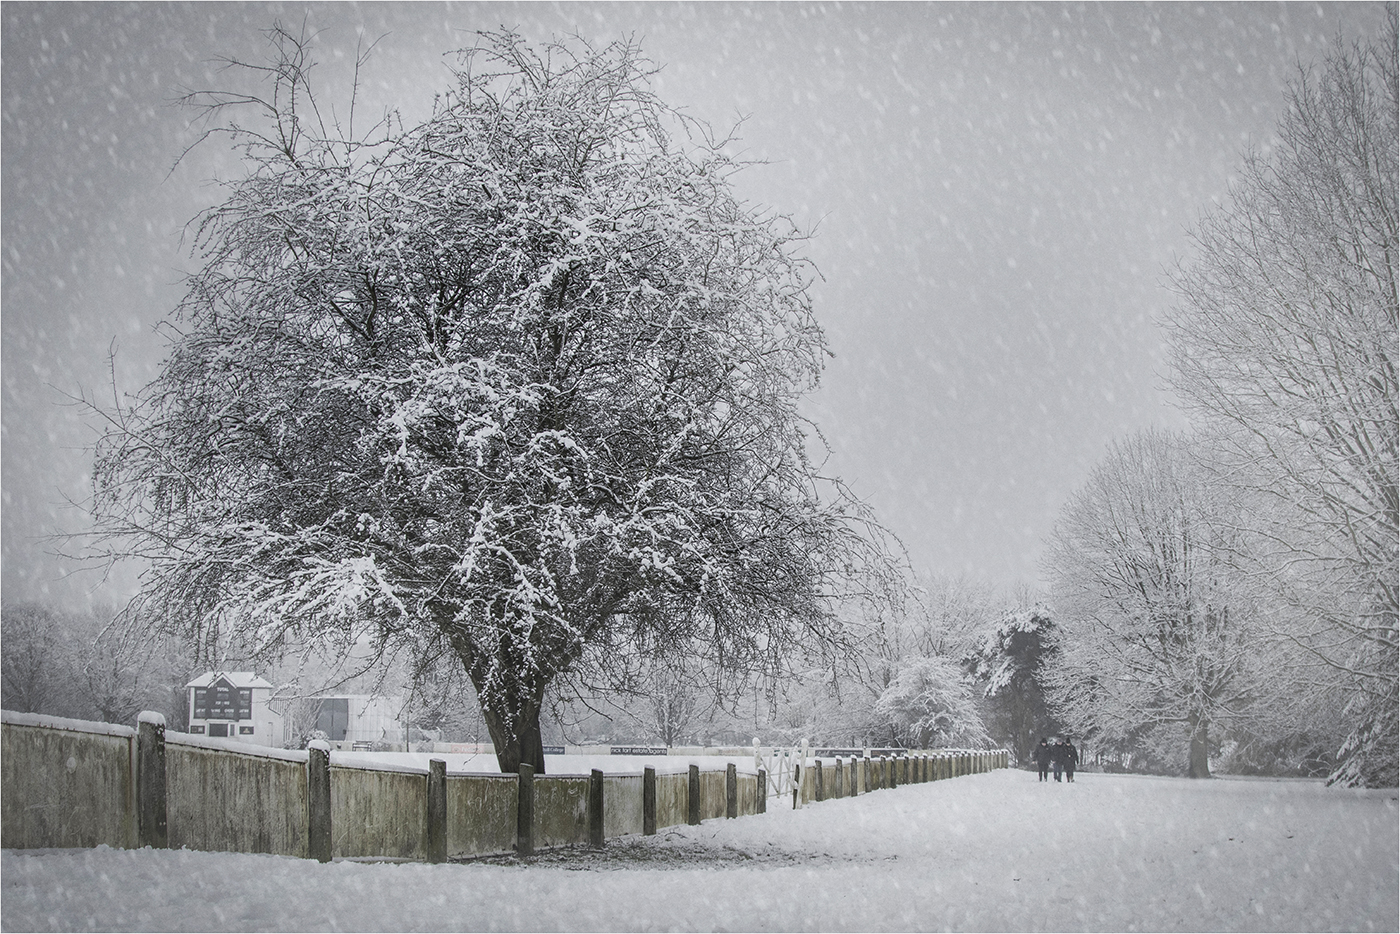 Commended: Winter Day on Tettenhall Green (Franco Colabella)